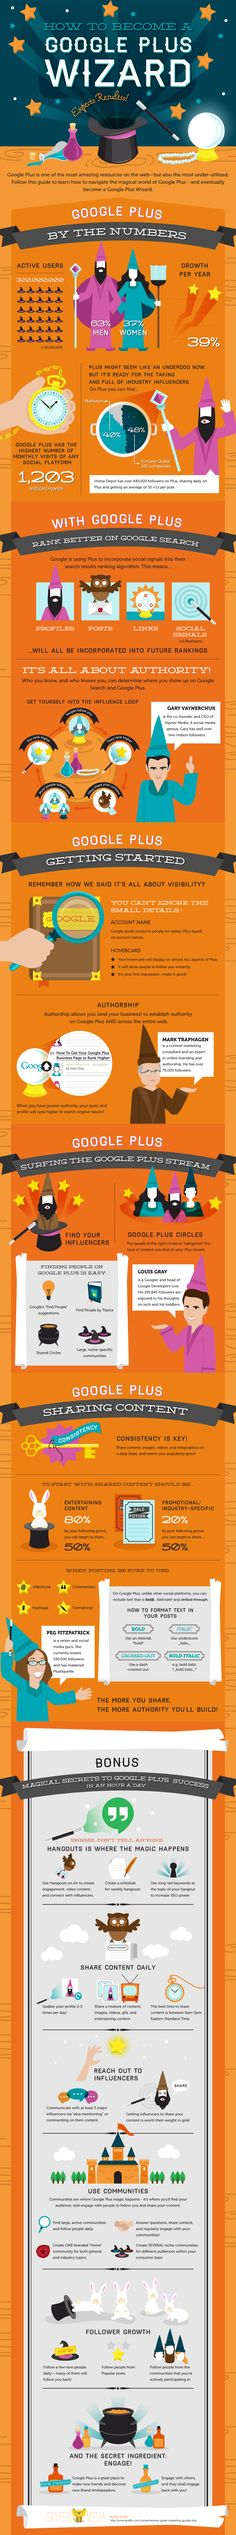 How to Become a Google Plus Wizard #Infographic | via #BornToBeSocial